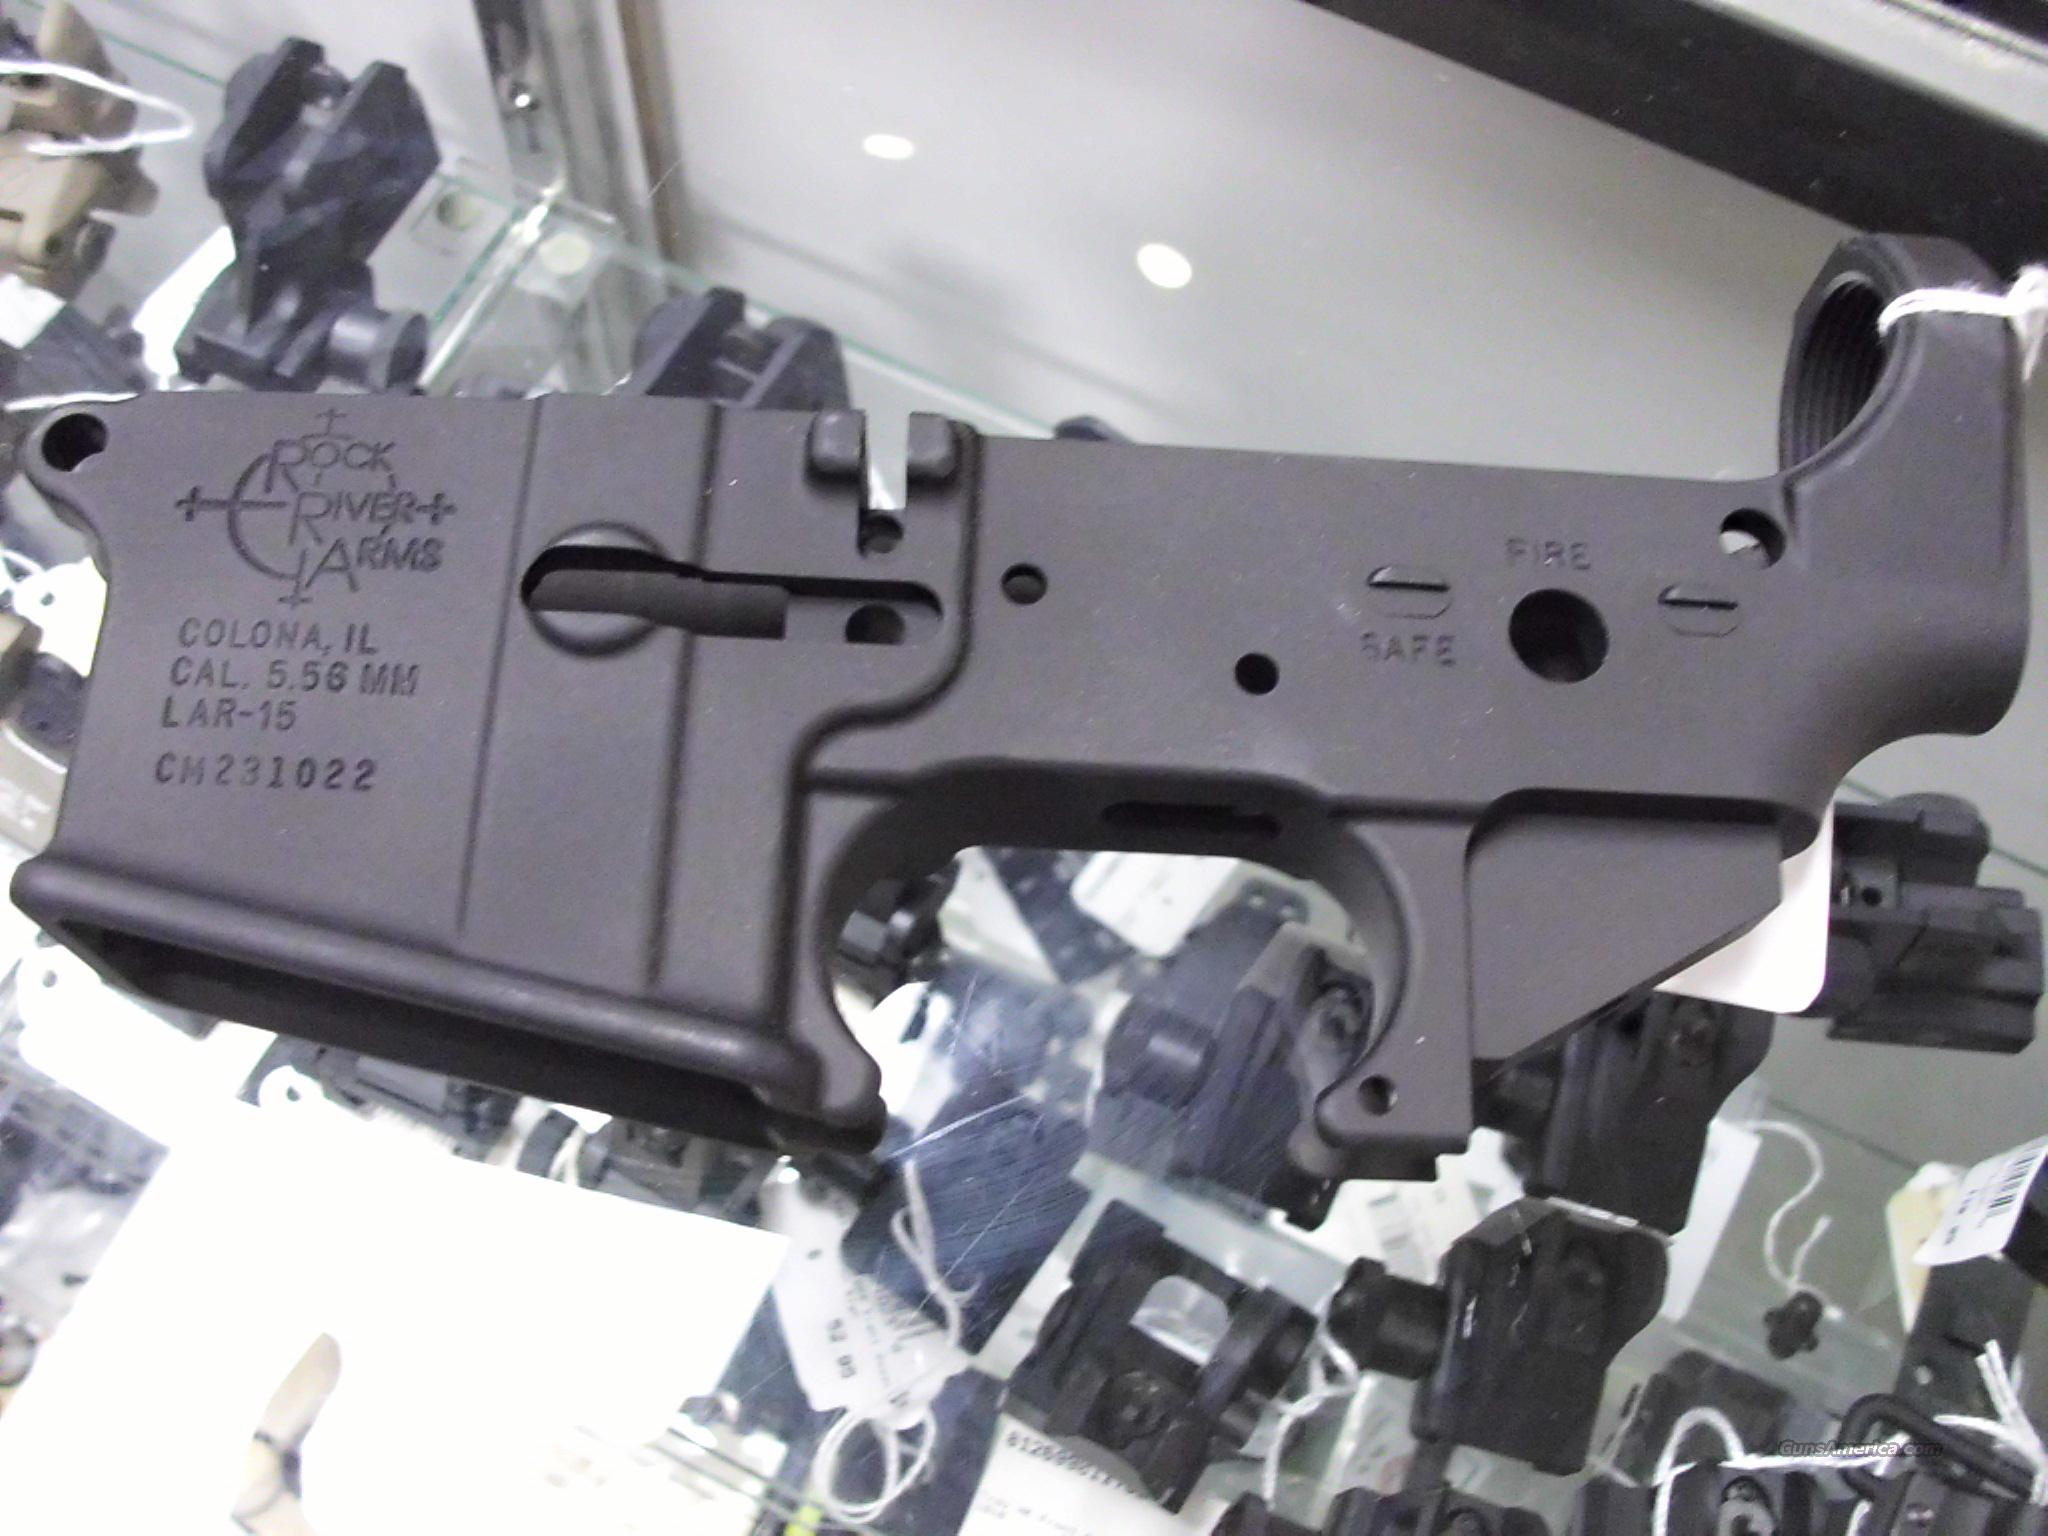 RRA Stripped lower 5.56mm NEW   Guns > Rifles > Rock River Arms Rifles